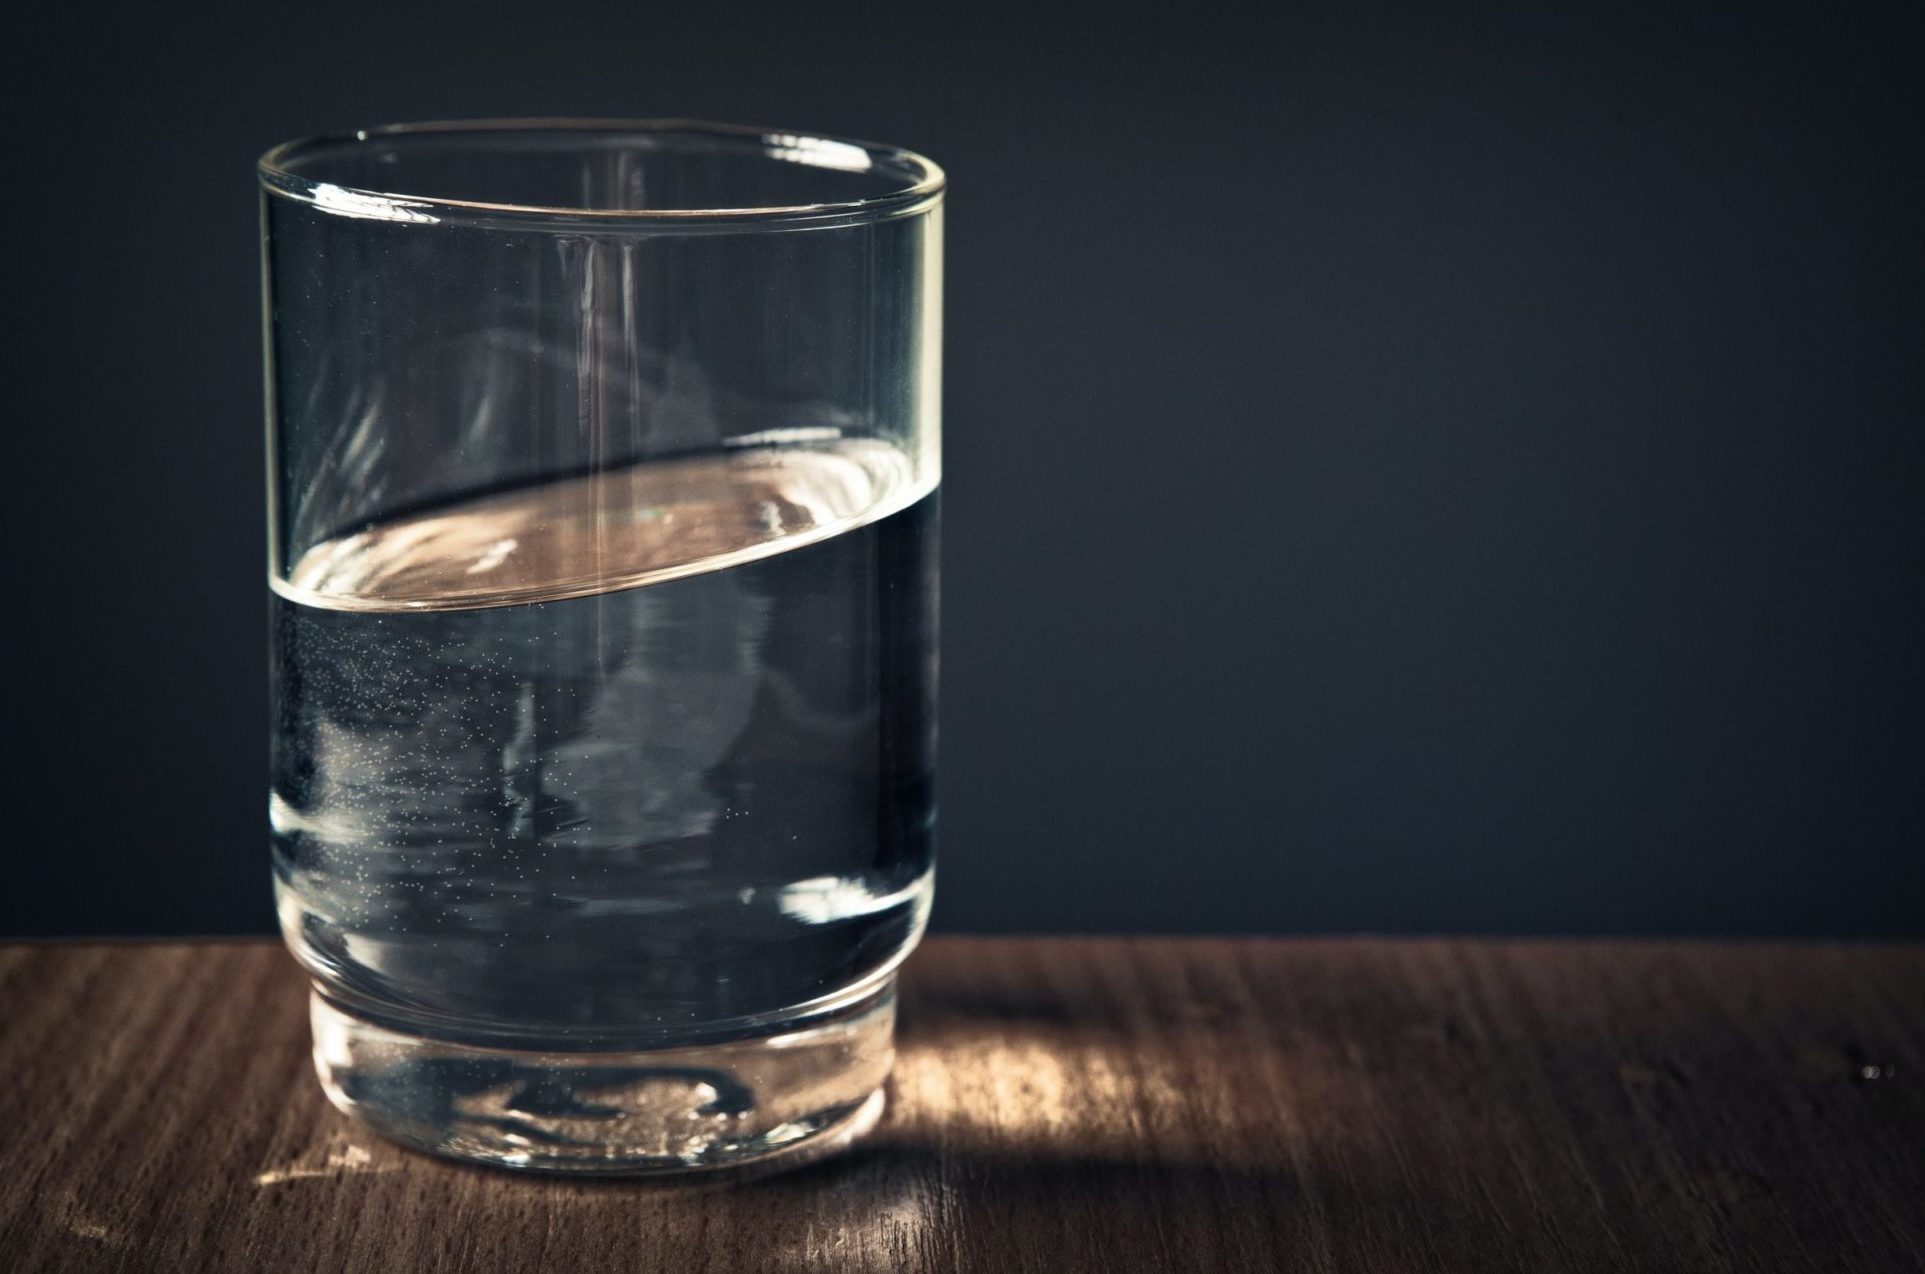 glass of water in dim-lit room